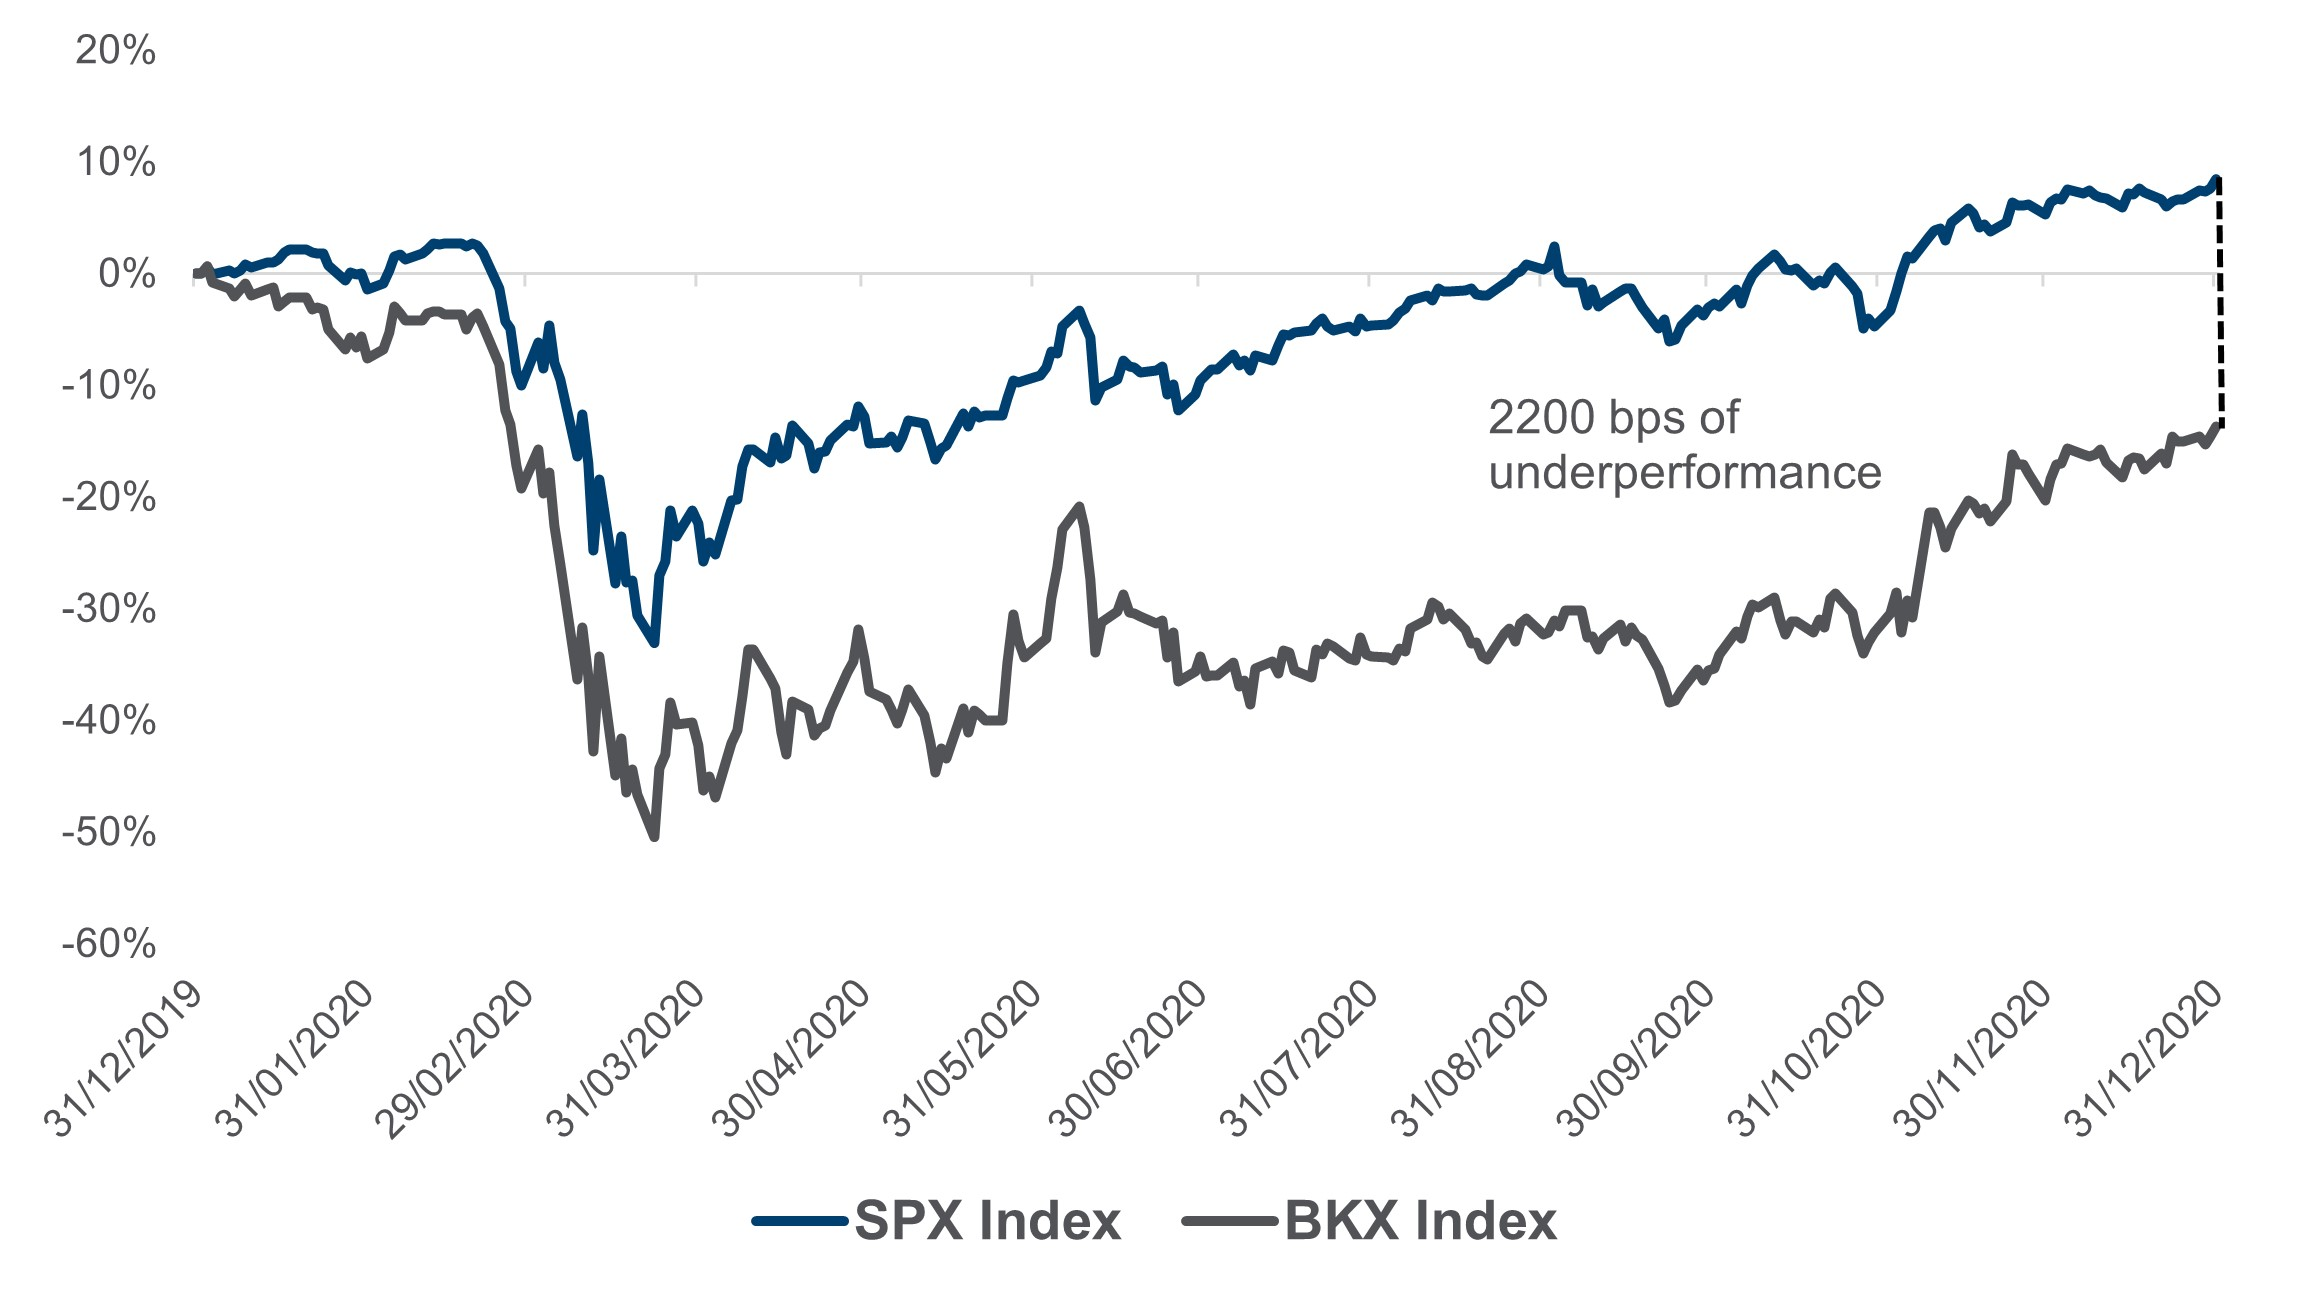 S&P500 Ex Tech v KBW Bank Index in 2020